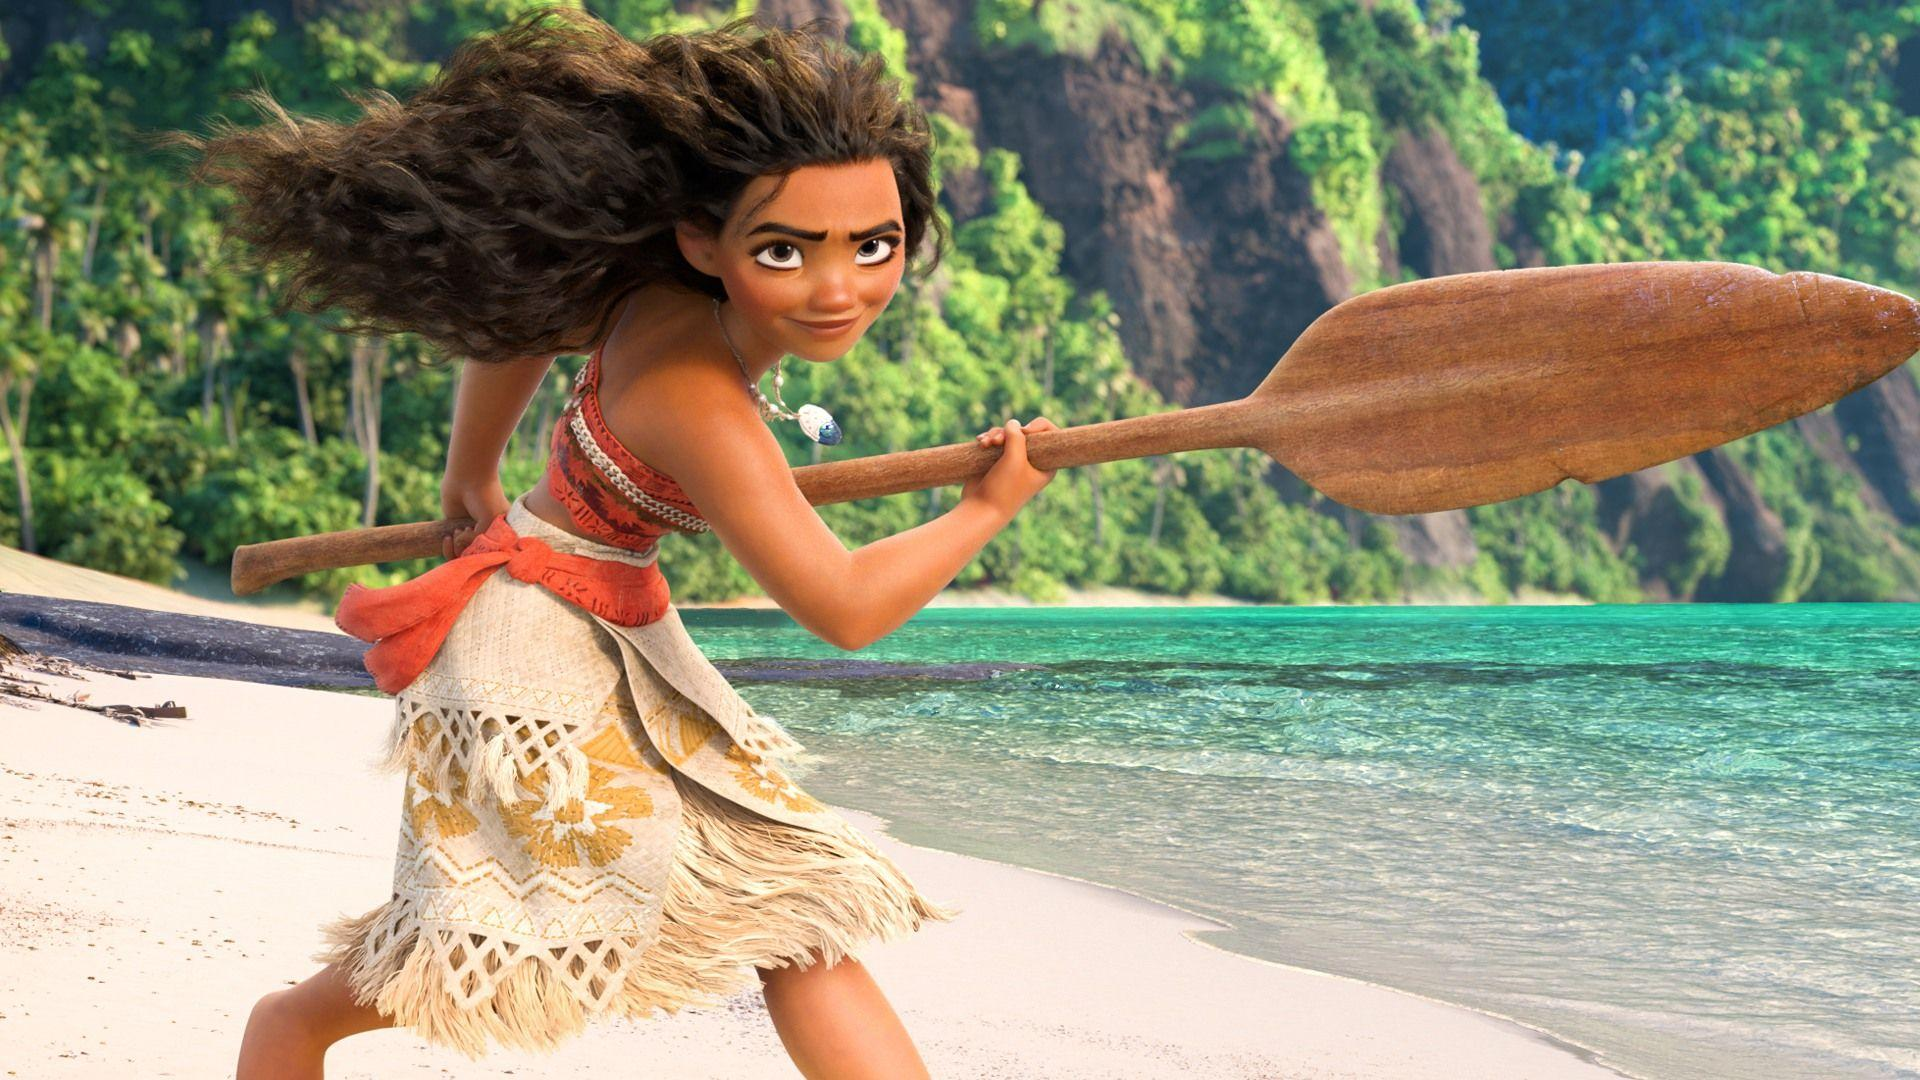 Moana Disney Movie 2016 Wallpaper #3122